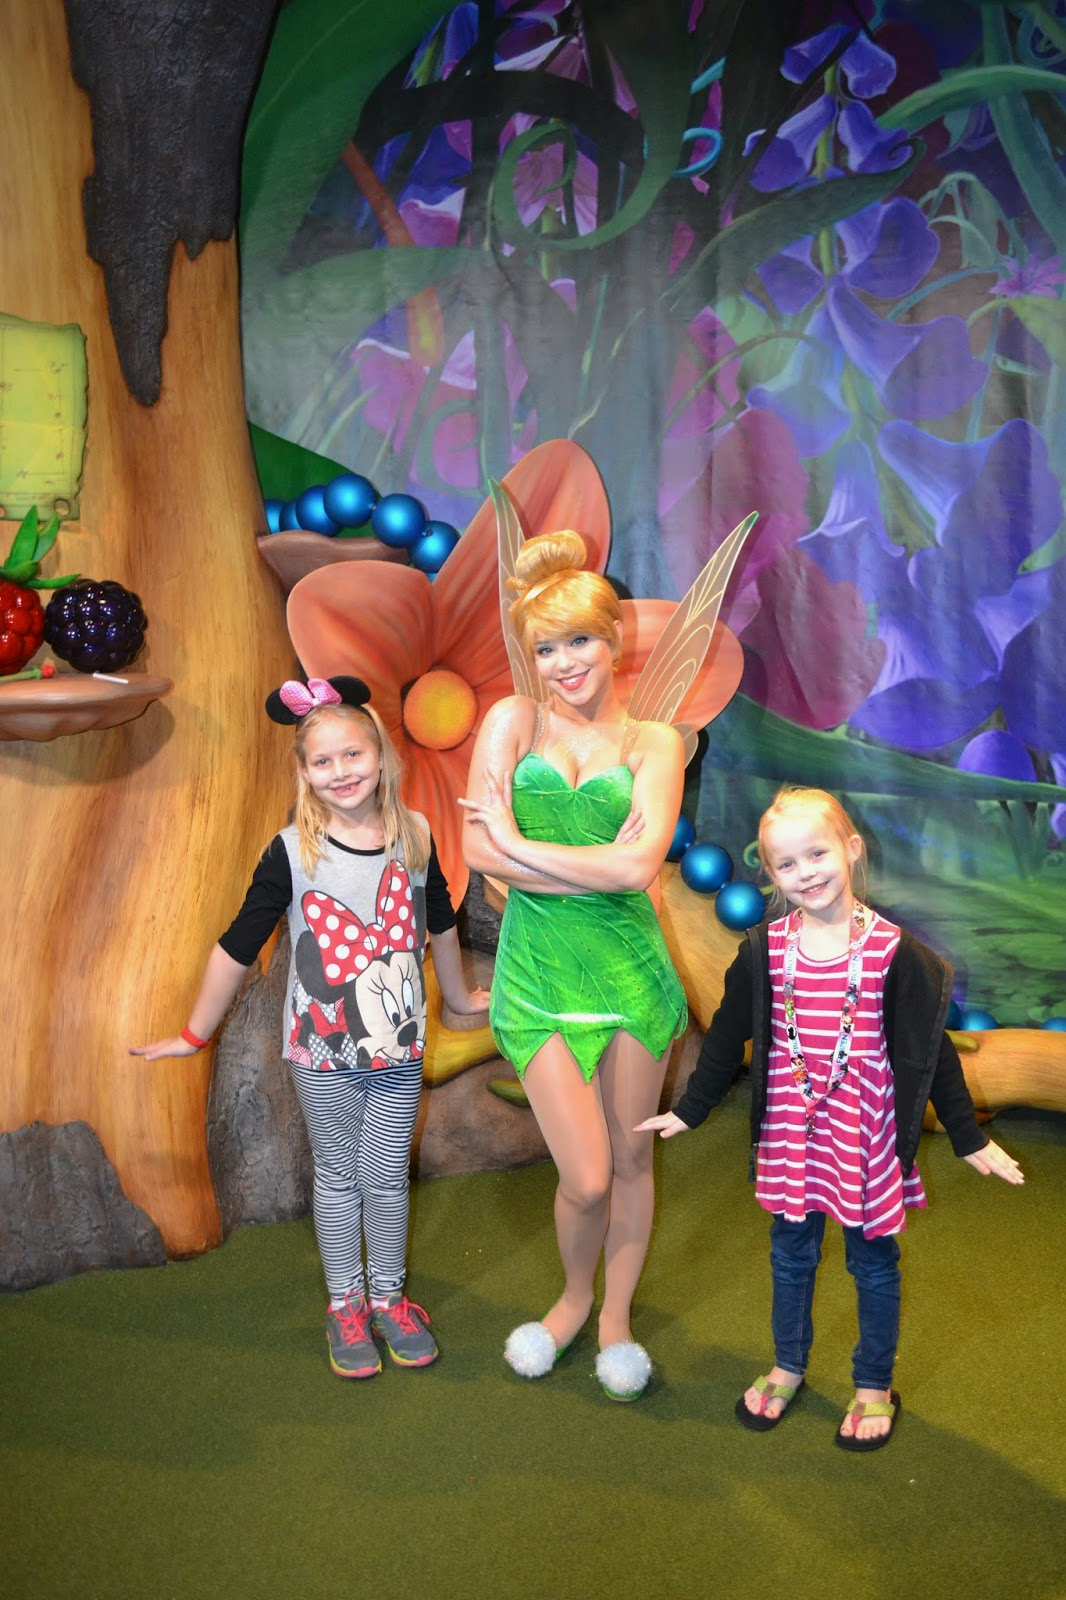 Meeting Tink at the Magic Kingdom